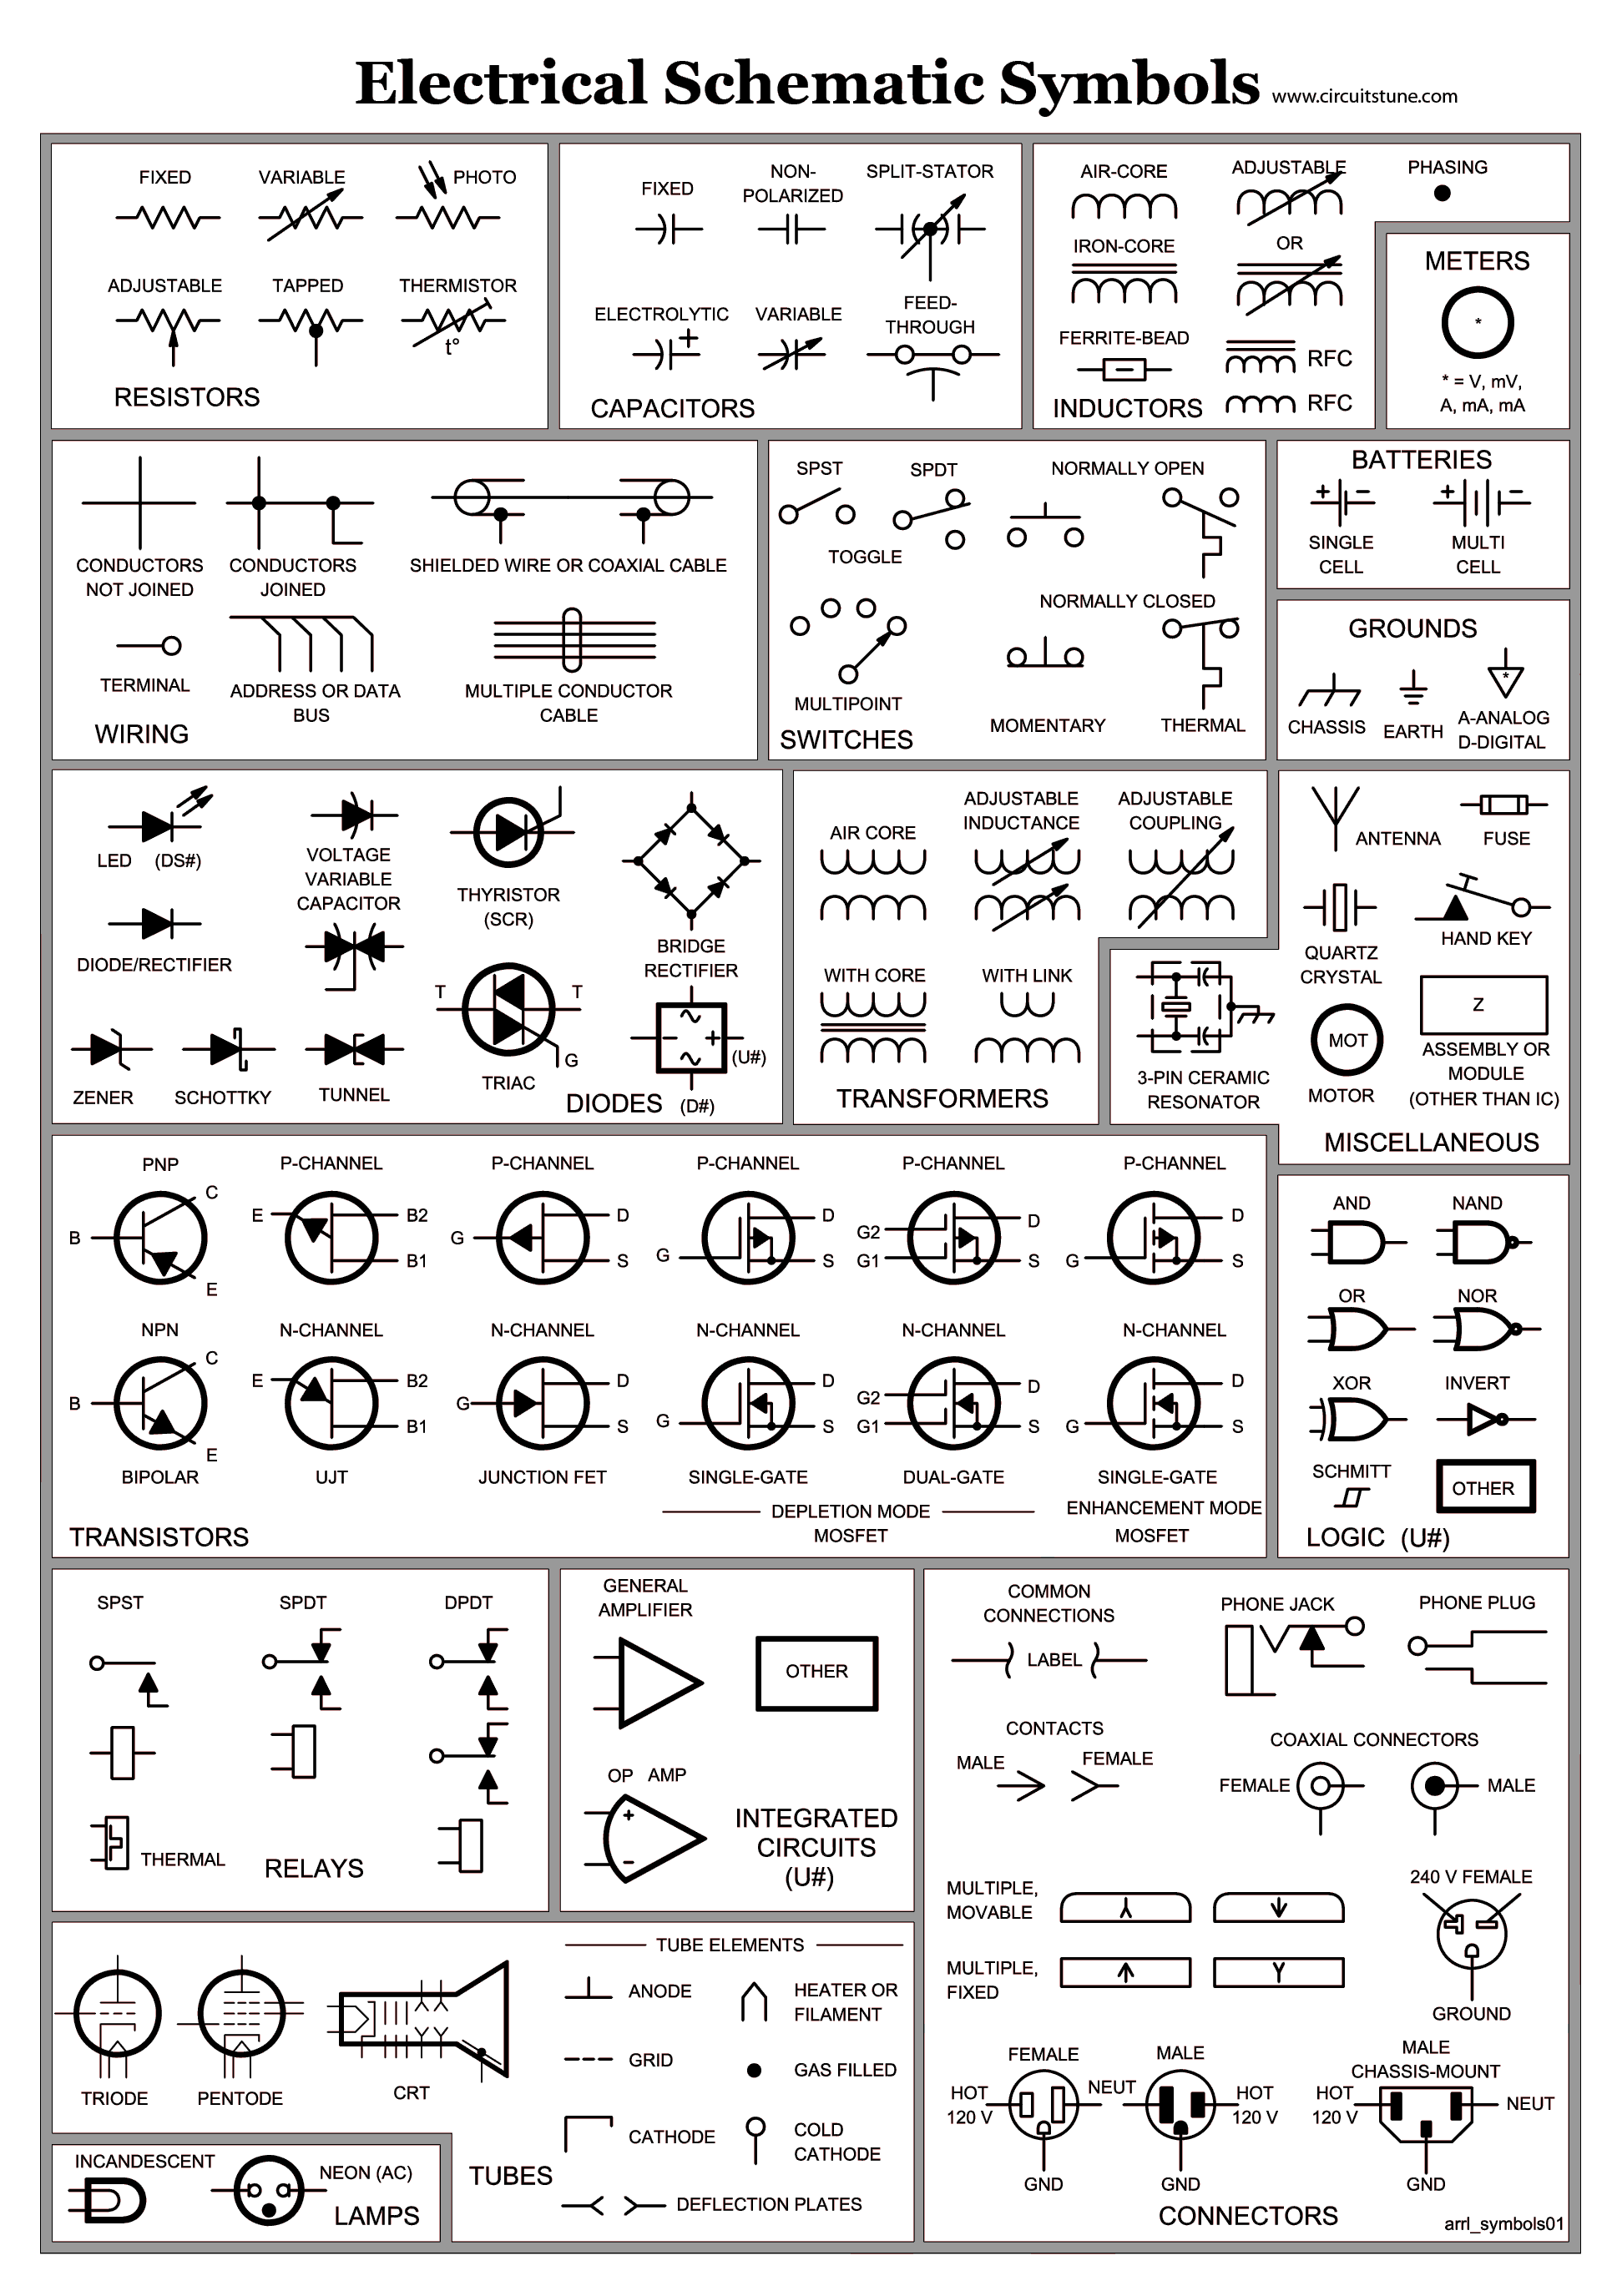 electrical schematic symbols wire diagram symbols automotive wiring rh pinterest com Key Switch Diagram Engine Key Switch Wiring Diagram